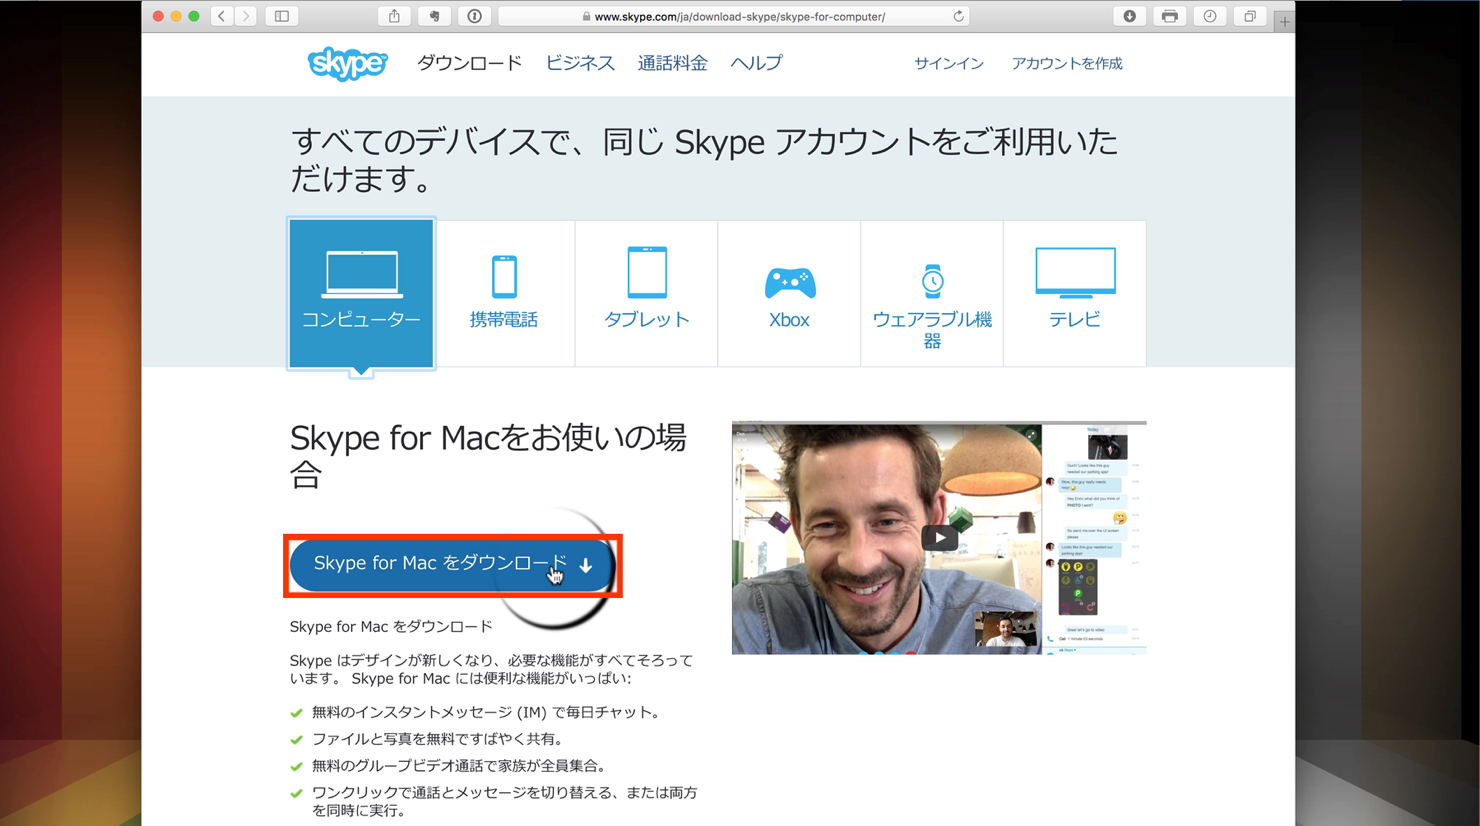 Skype for Mac_1